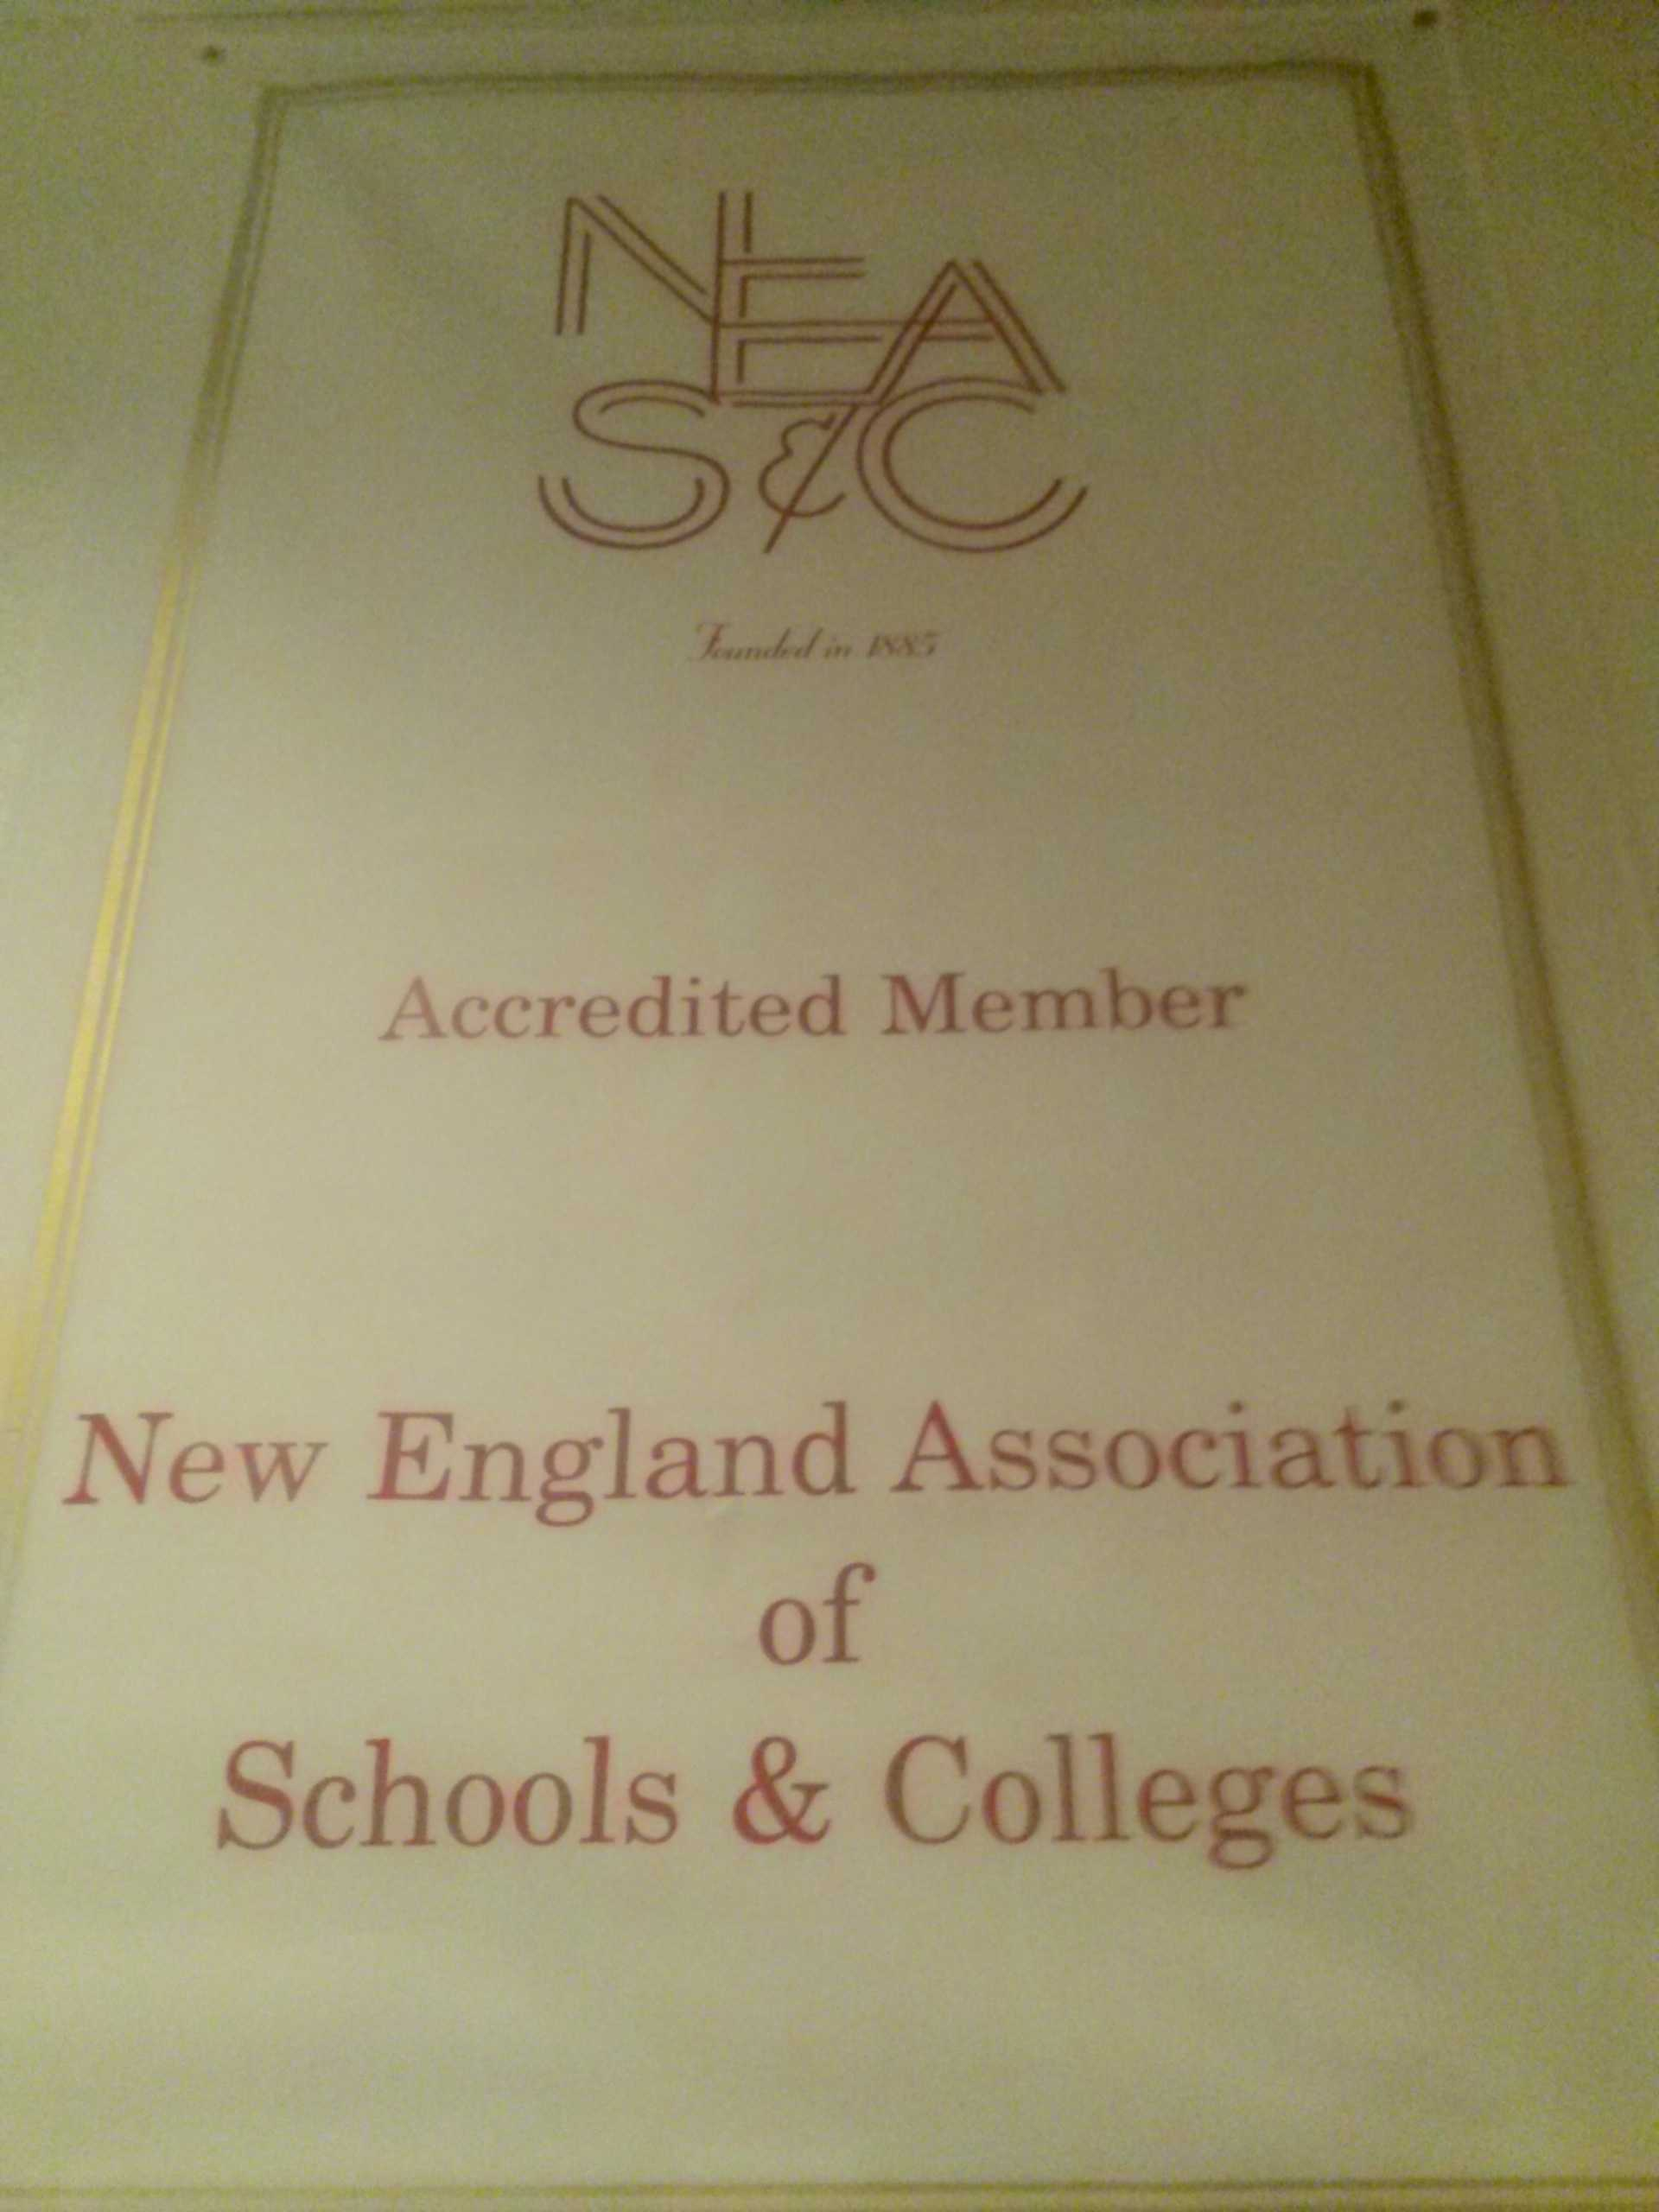 A front hall banner displays MacDuffie's NEASC accreditation, which is in the process of being renewed.